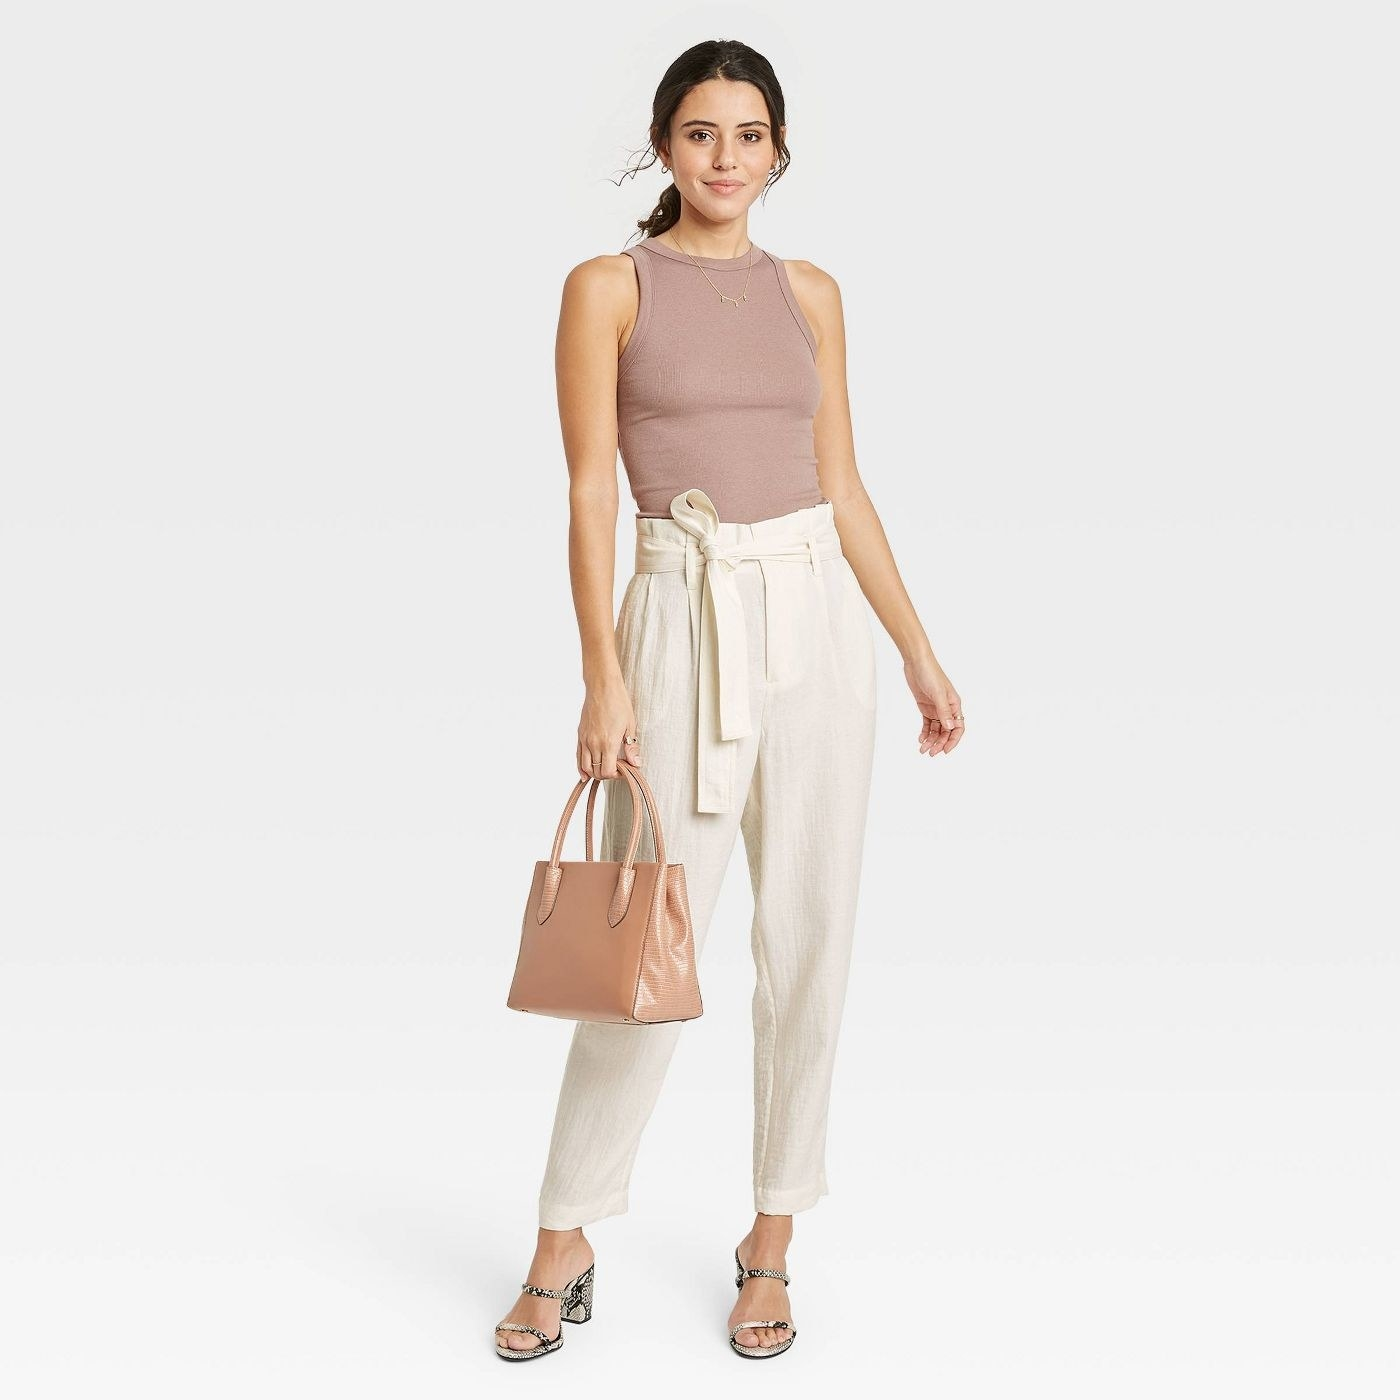 Model wearing off-white paper-bag pants with pockets and tie waist